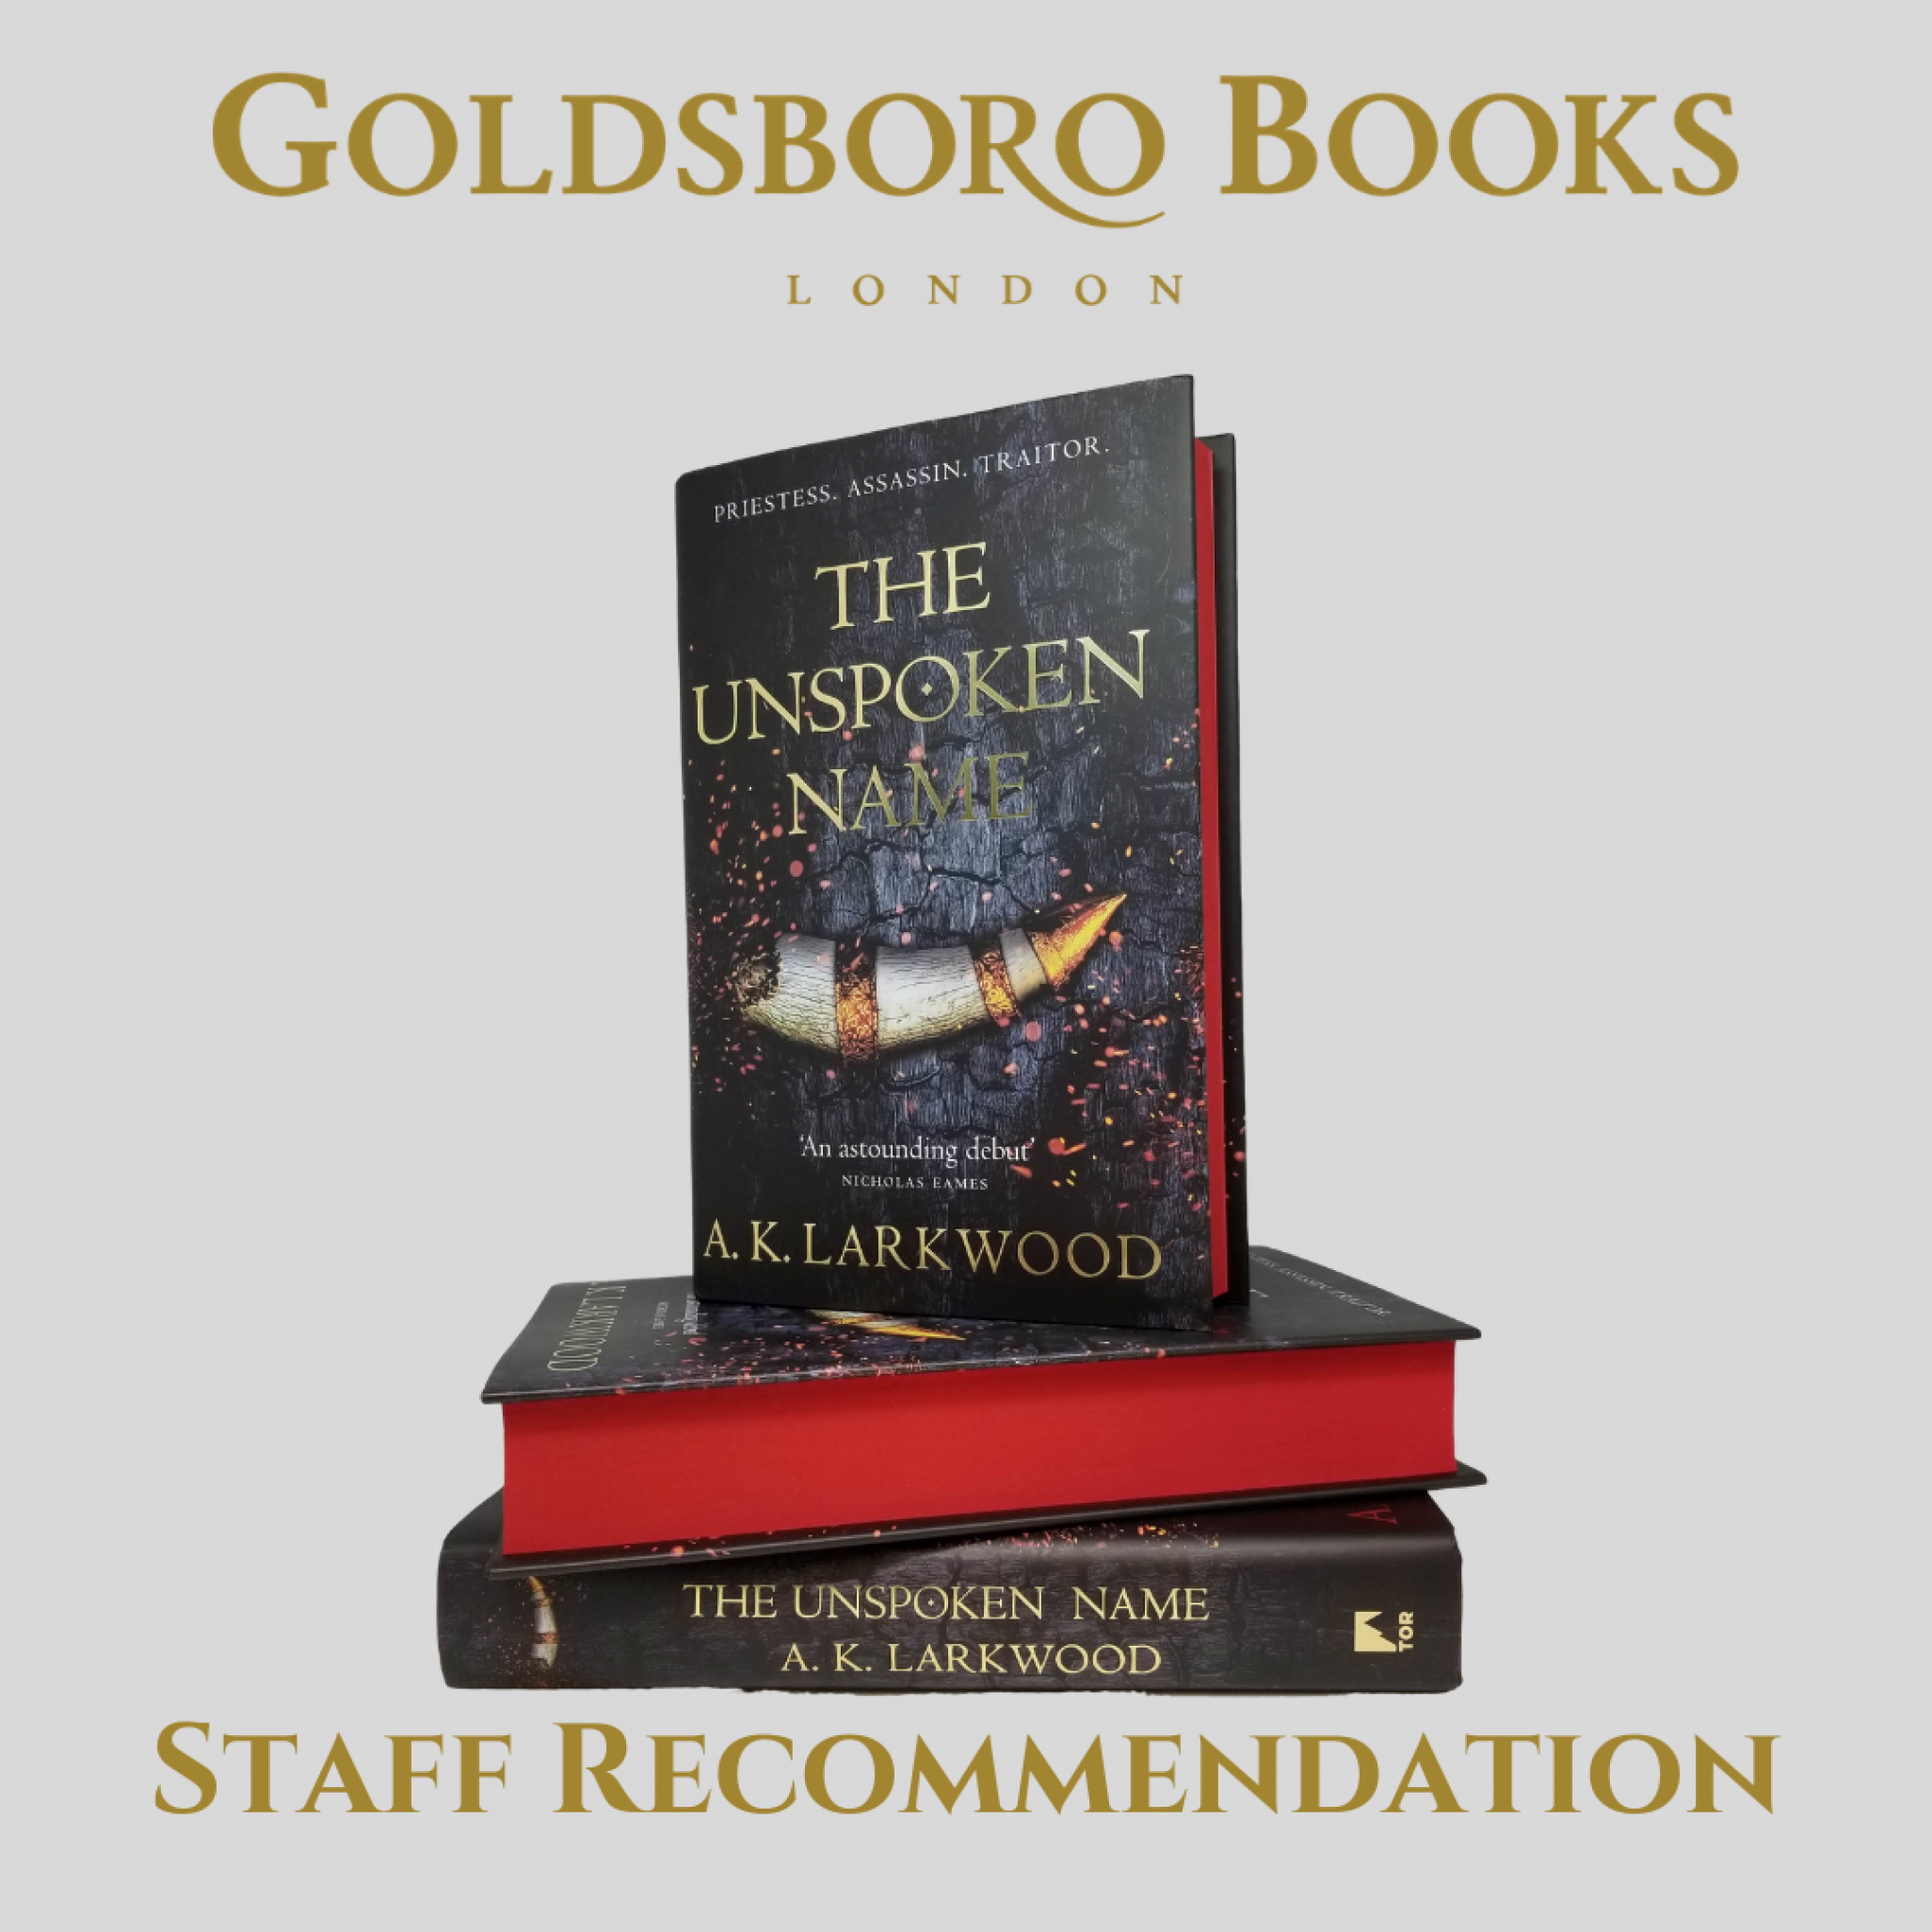 Staff Recommendation - The Unspoken Name